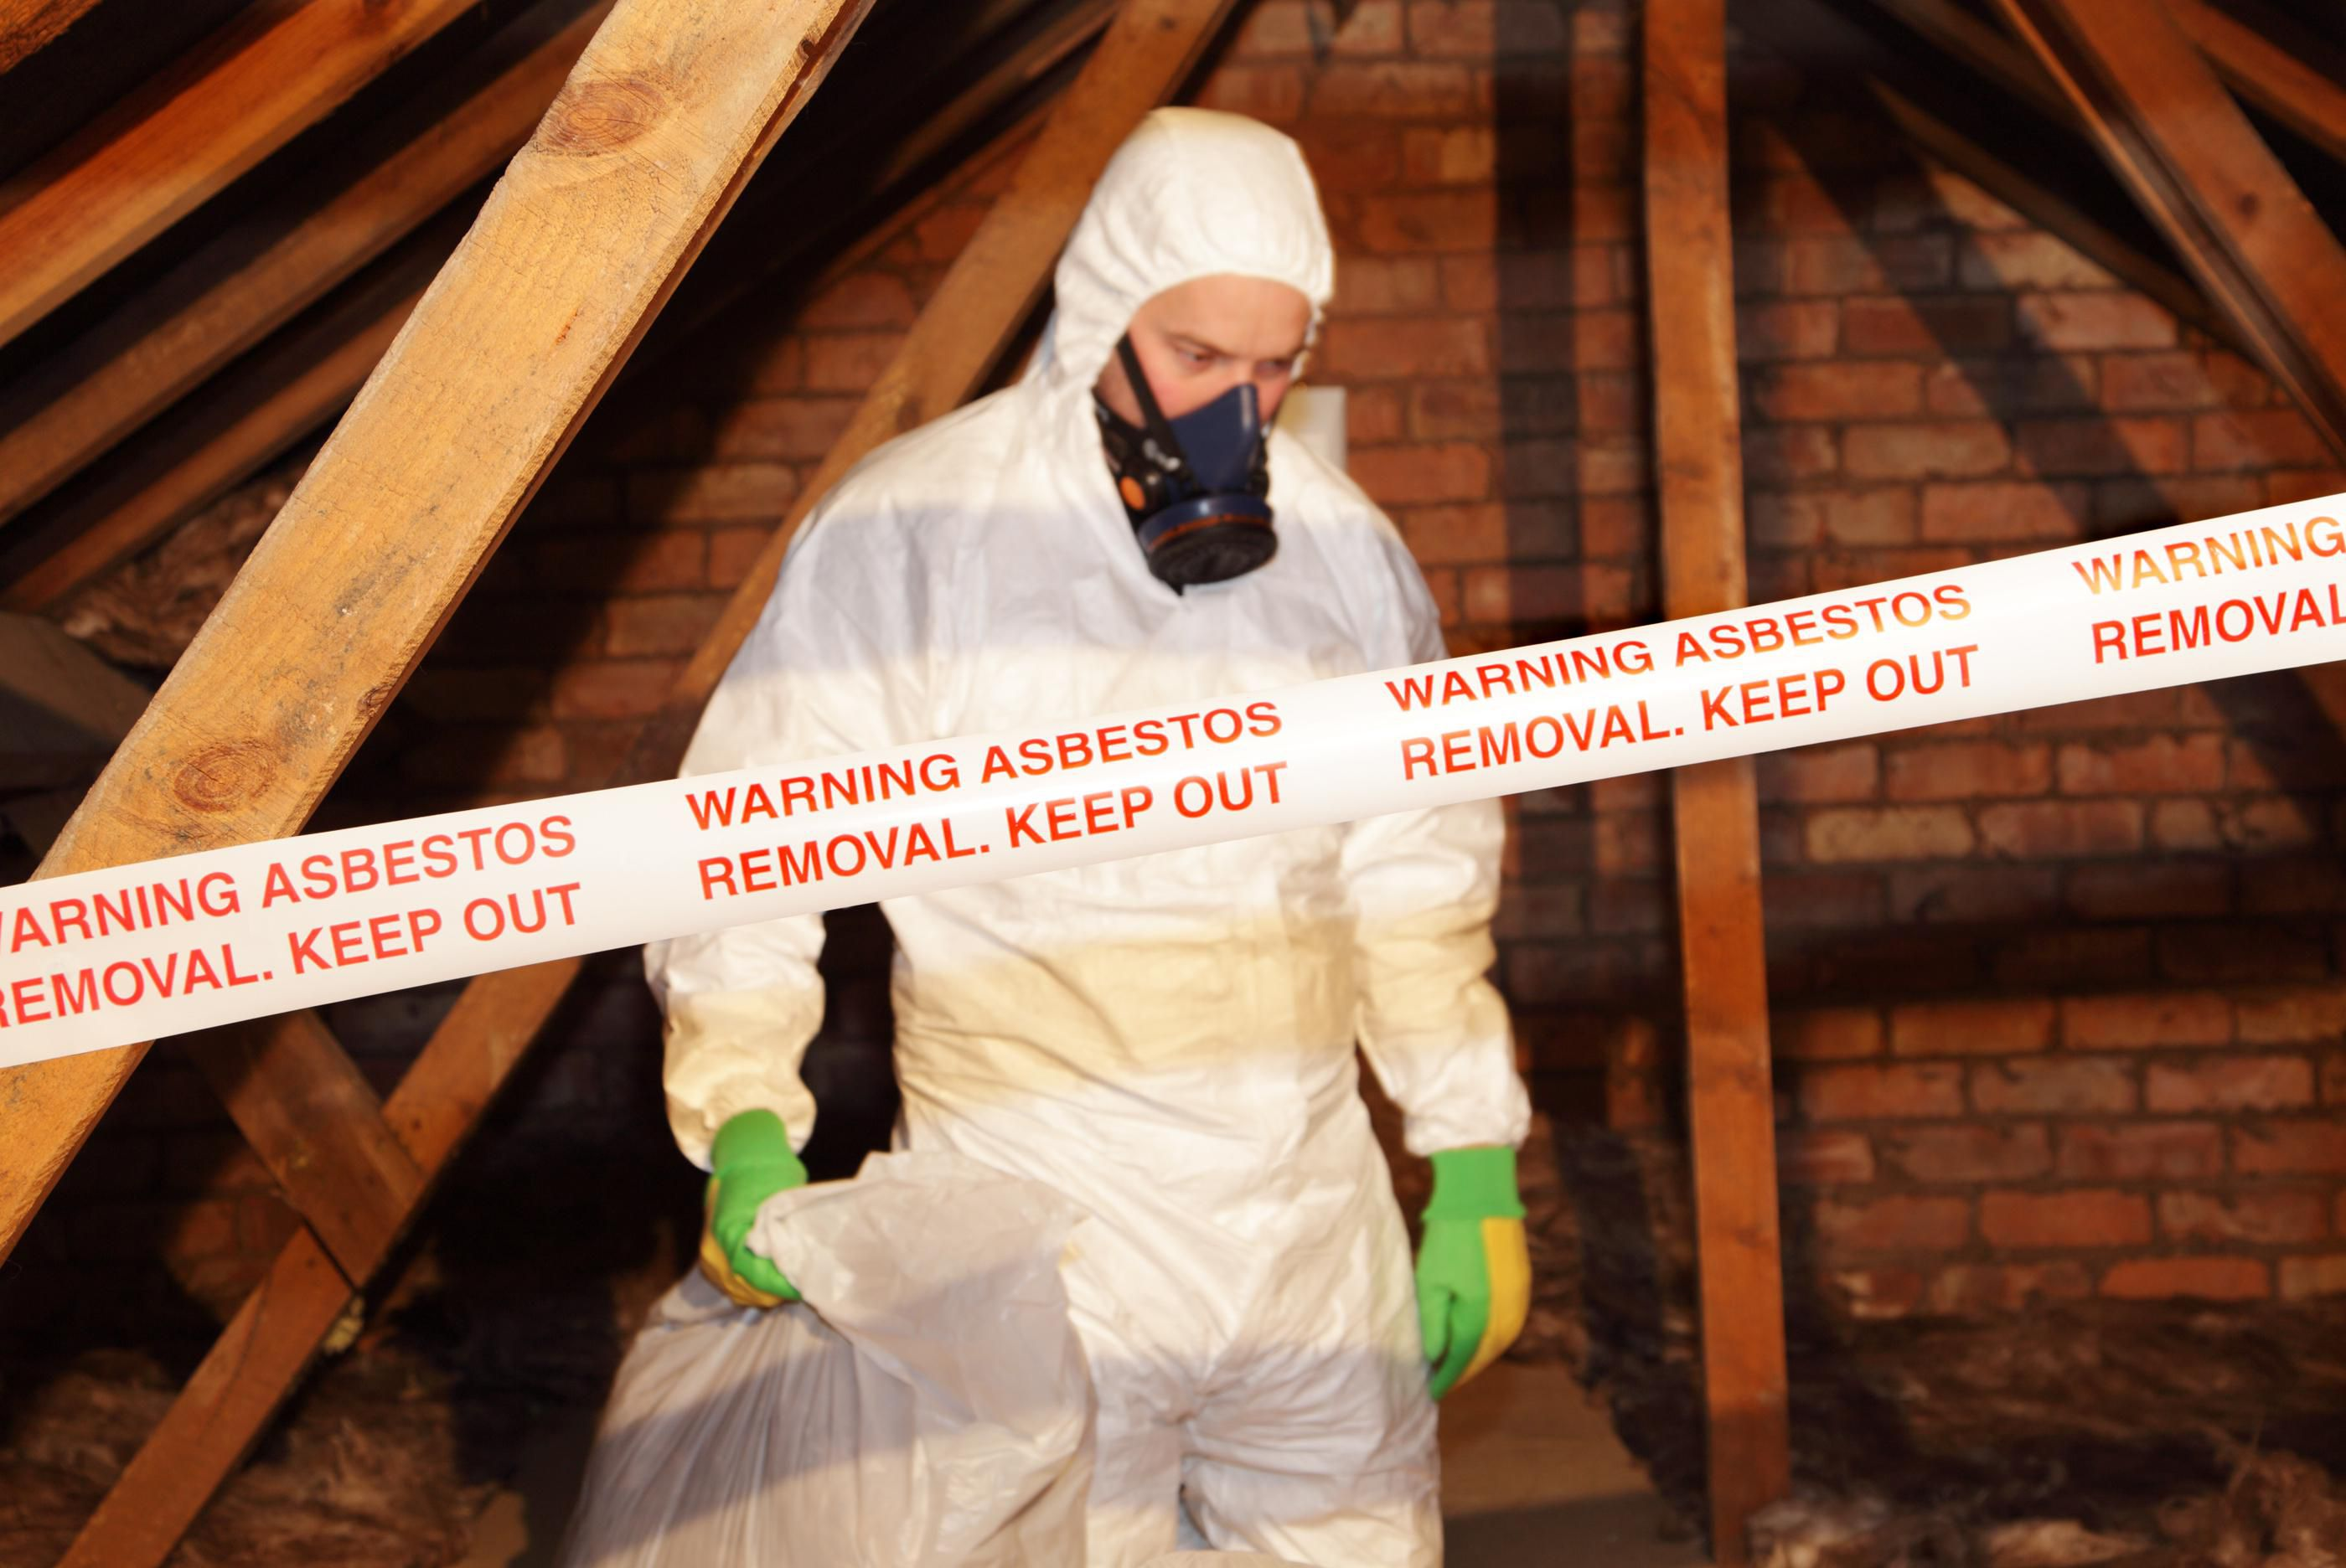 is it legal to remove asbestos yourself?